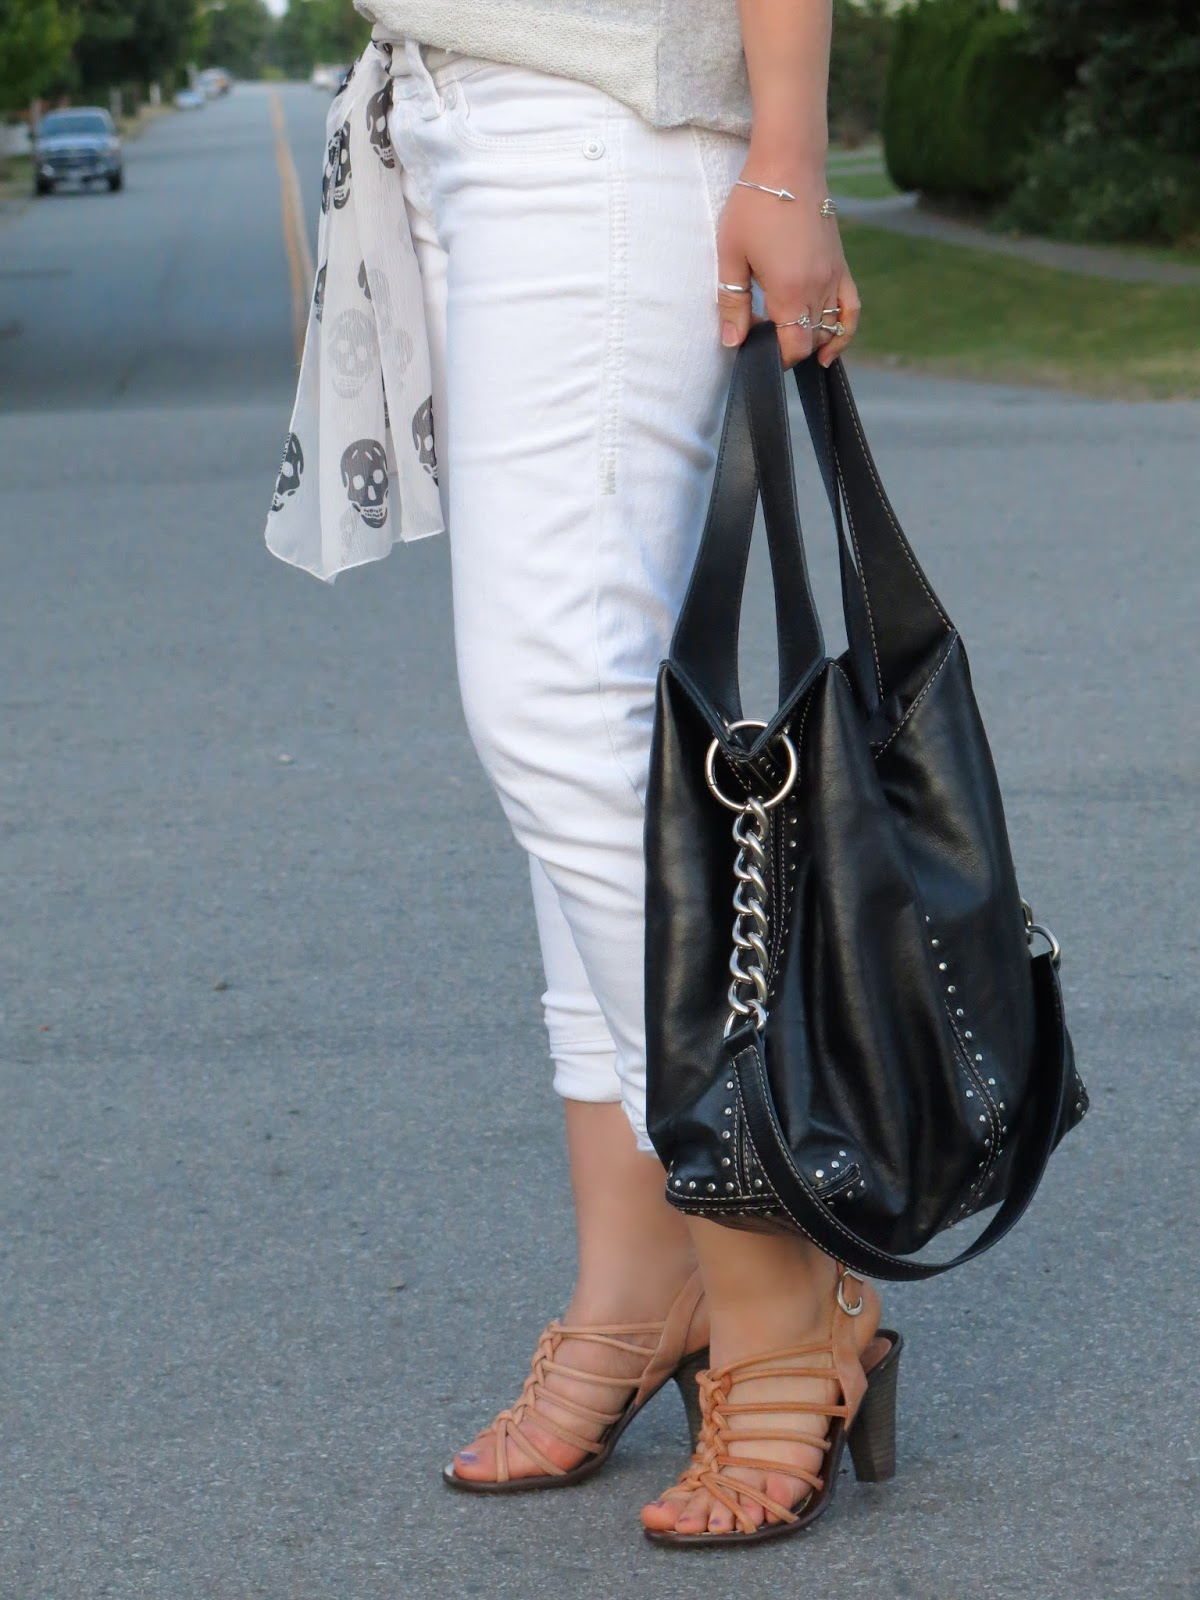 styling white jeans with a sweatshirt, strappy sandals, Michael Kors belt, and a scarf-as-belt!